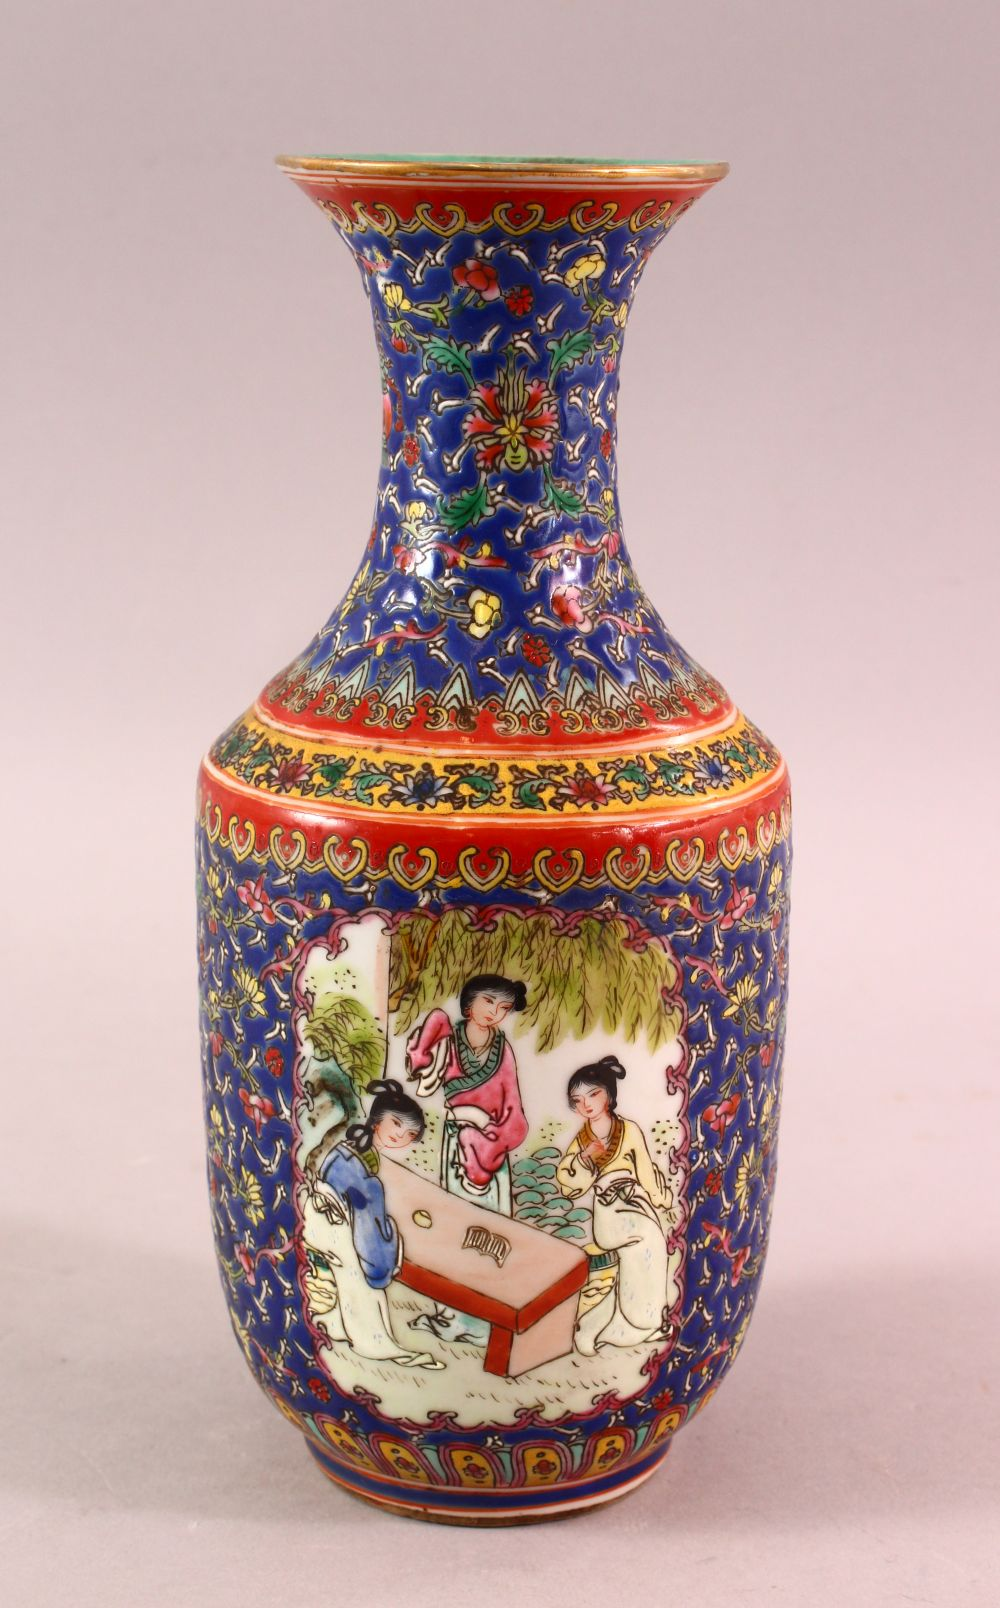 A CHINESE FAMILLE ROSE PORCELAIN VASE, with panels of figures and floral decoration, the base with a